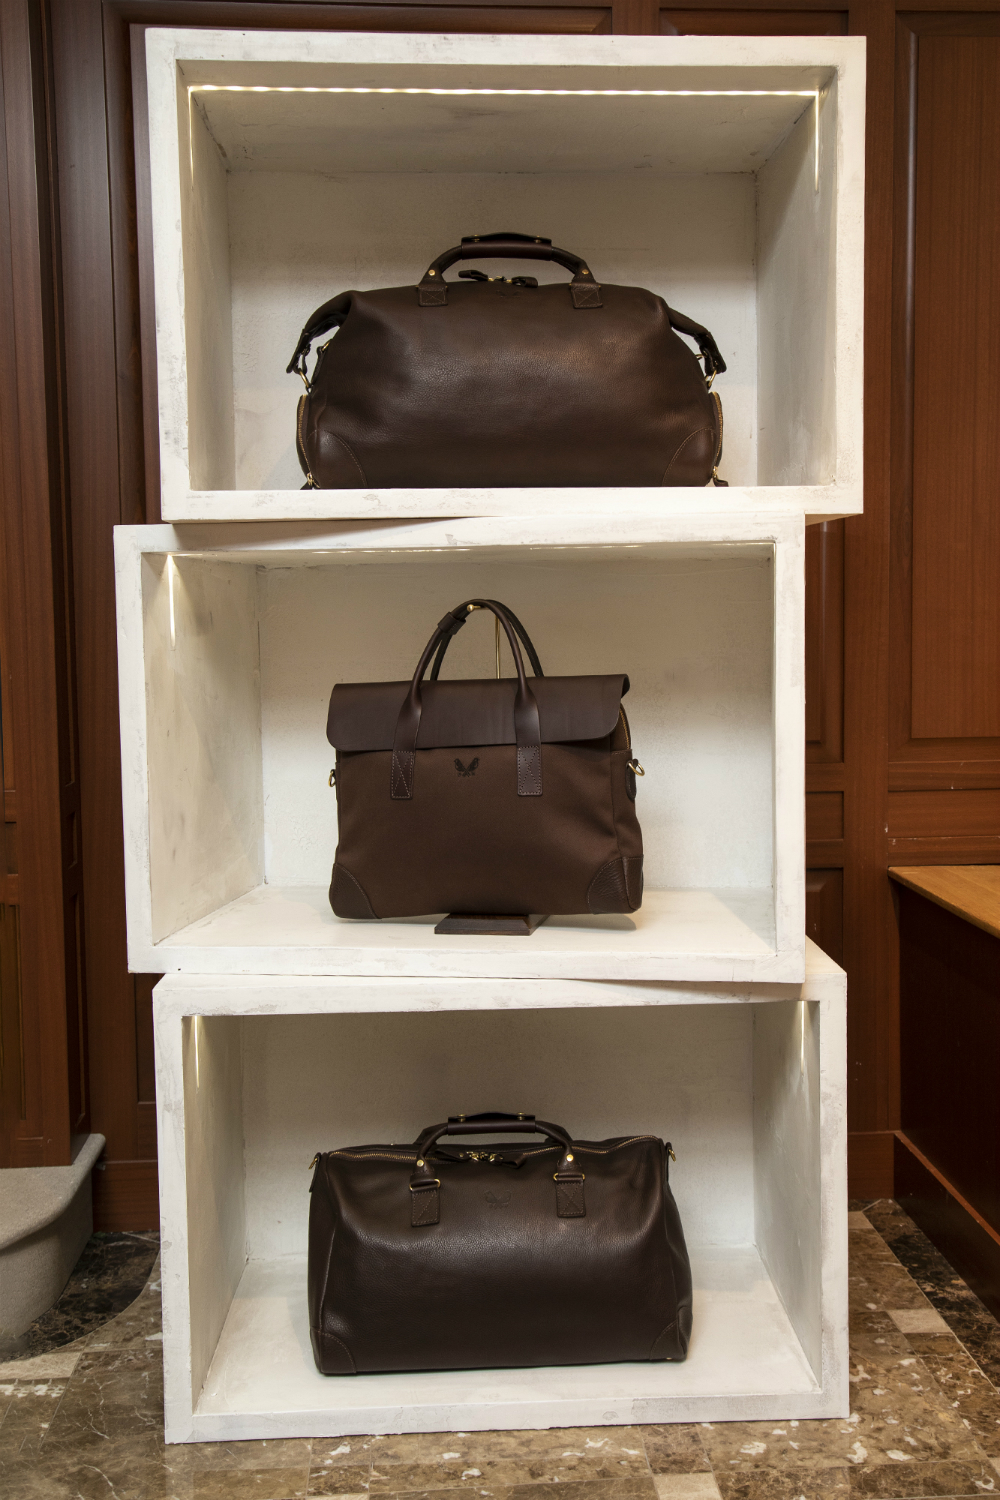 Two weekenders and a briefcase from Bennett Winch on display at the Turnbull & Asser townhouse.